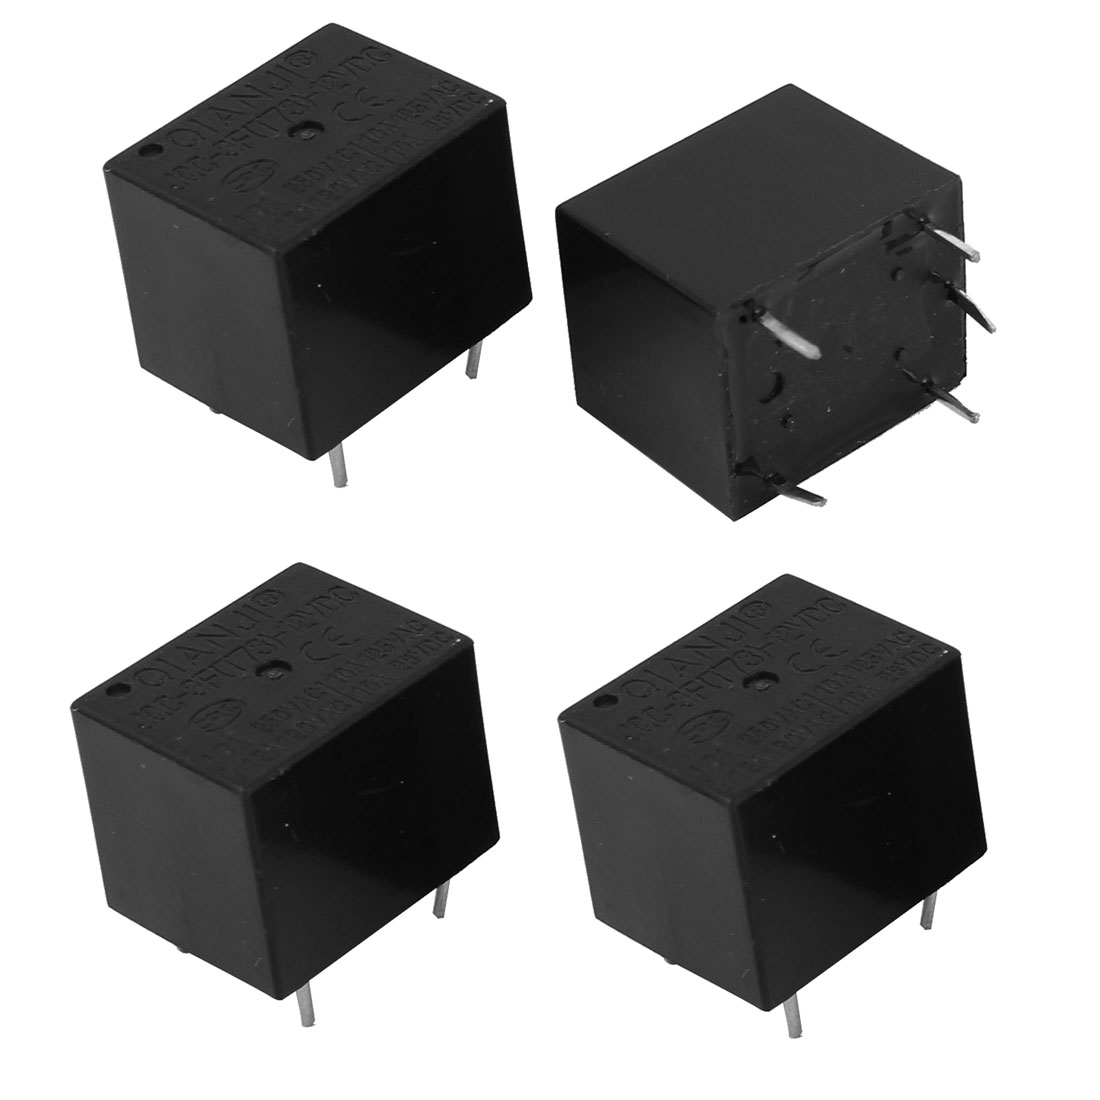 4 Pieces SPDT General Purpose Power Electromagnetic Relay DC 12V Coil